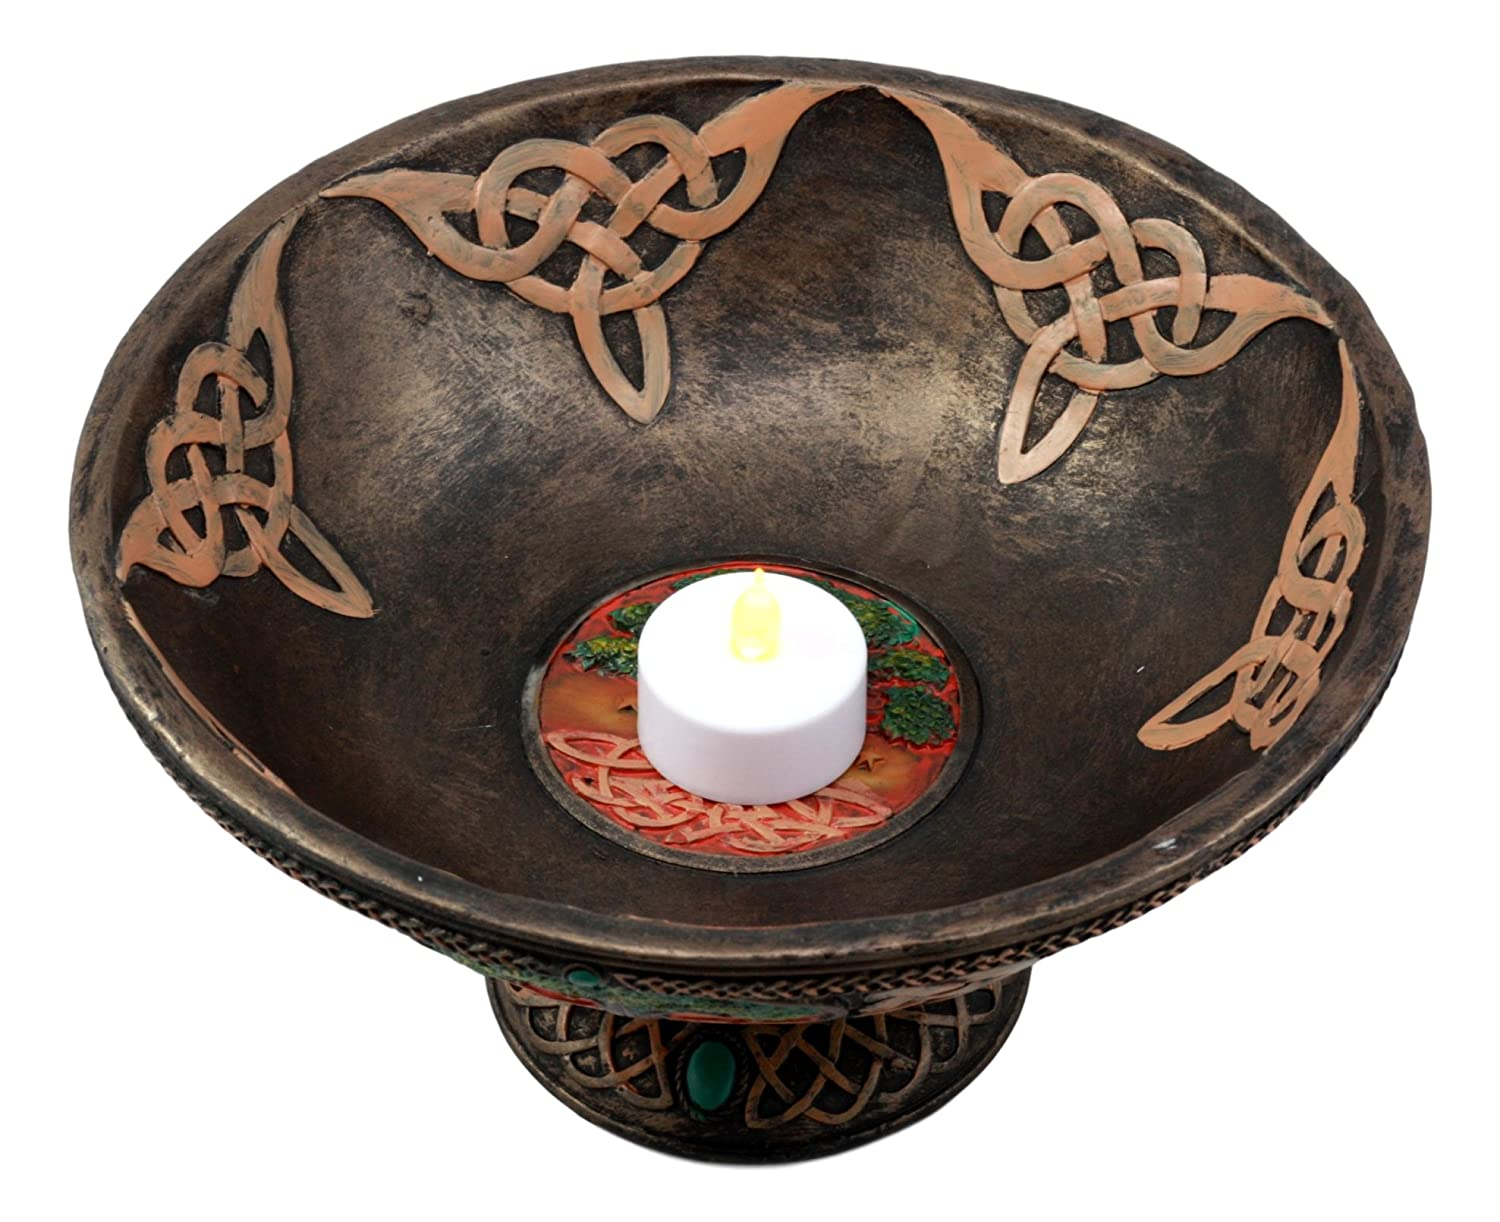 Ebros Ancient Celtic Tree of Life Offering Bowl Figurine 8.5H Celtic Trinity Knotwork Decorative Utility Holder Serving Bowl Statue